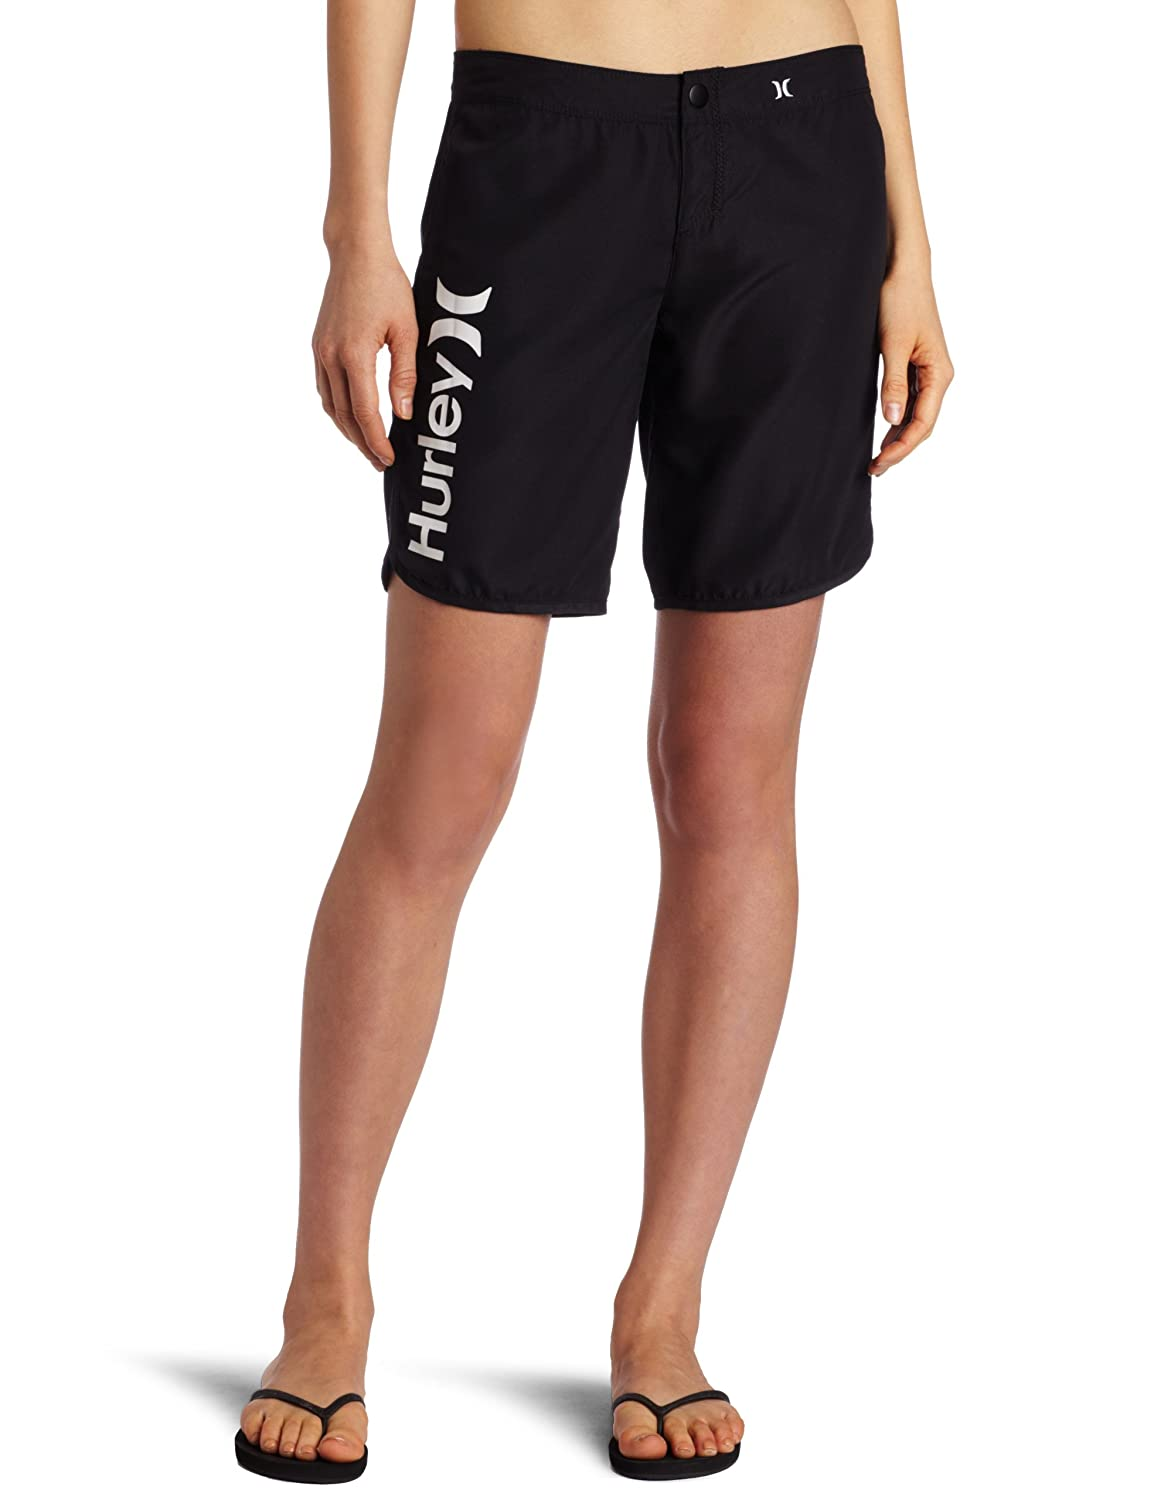 Hurley Womens Supersuede Beachrider 9 Inch Boardshort Black 0 Hurley Young Men's GB02SSBR9